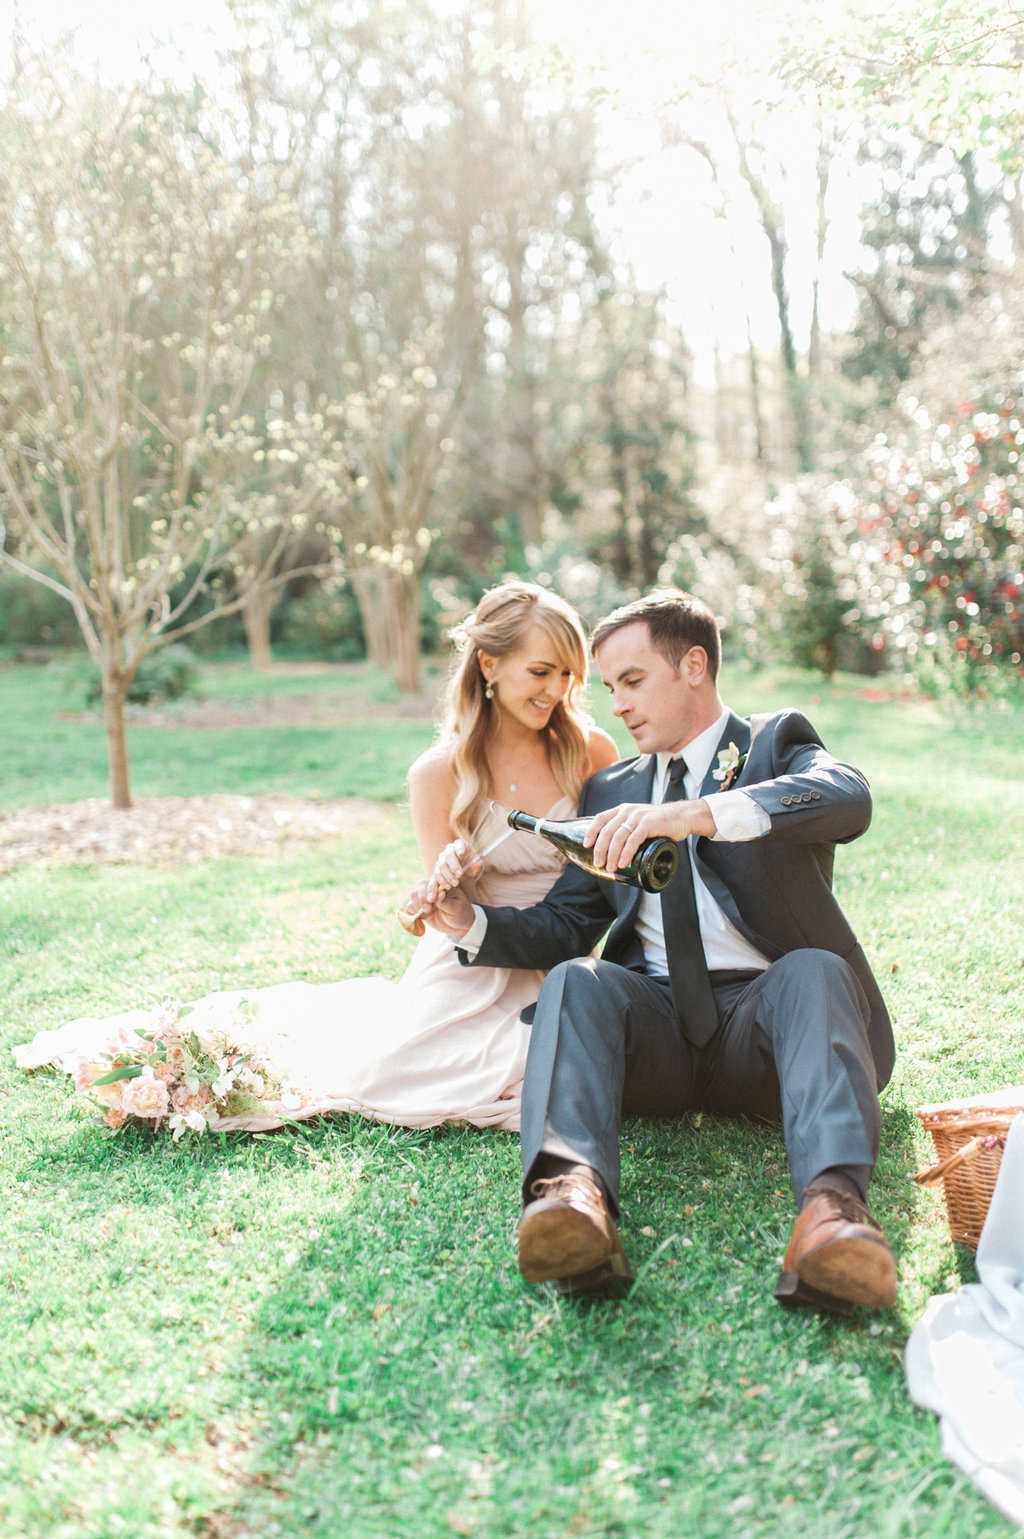 Cator-Woolford-Gardens-Engagement-atlanta-wedding-photographer-hannah-forsberg-5.jpg